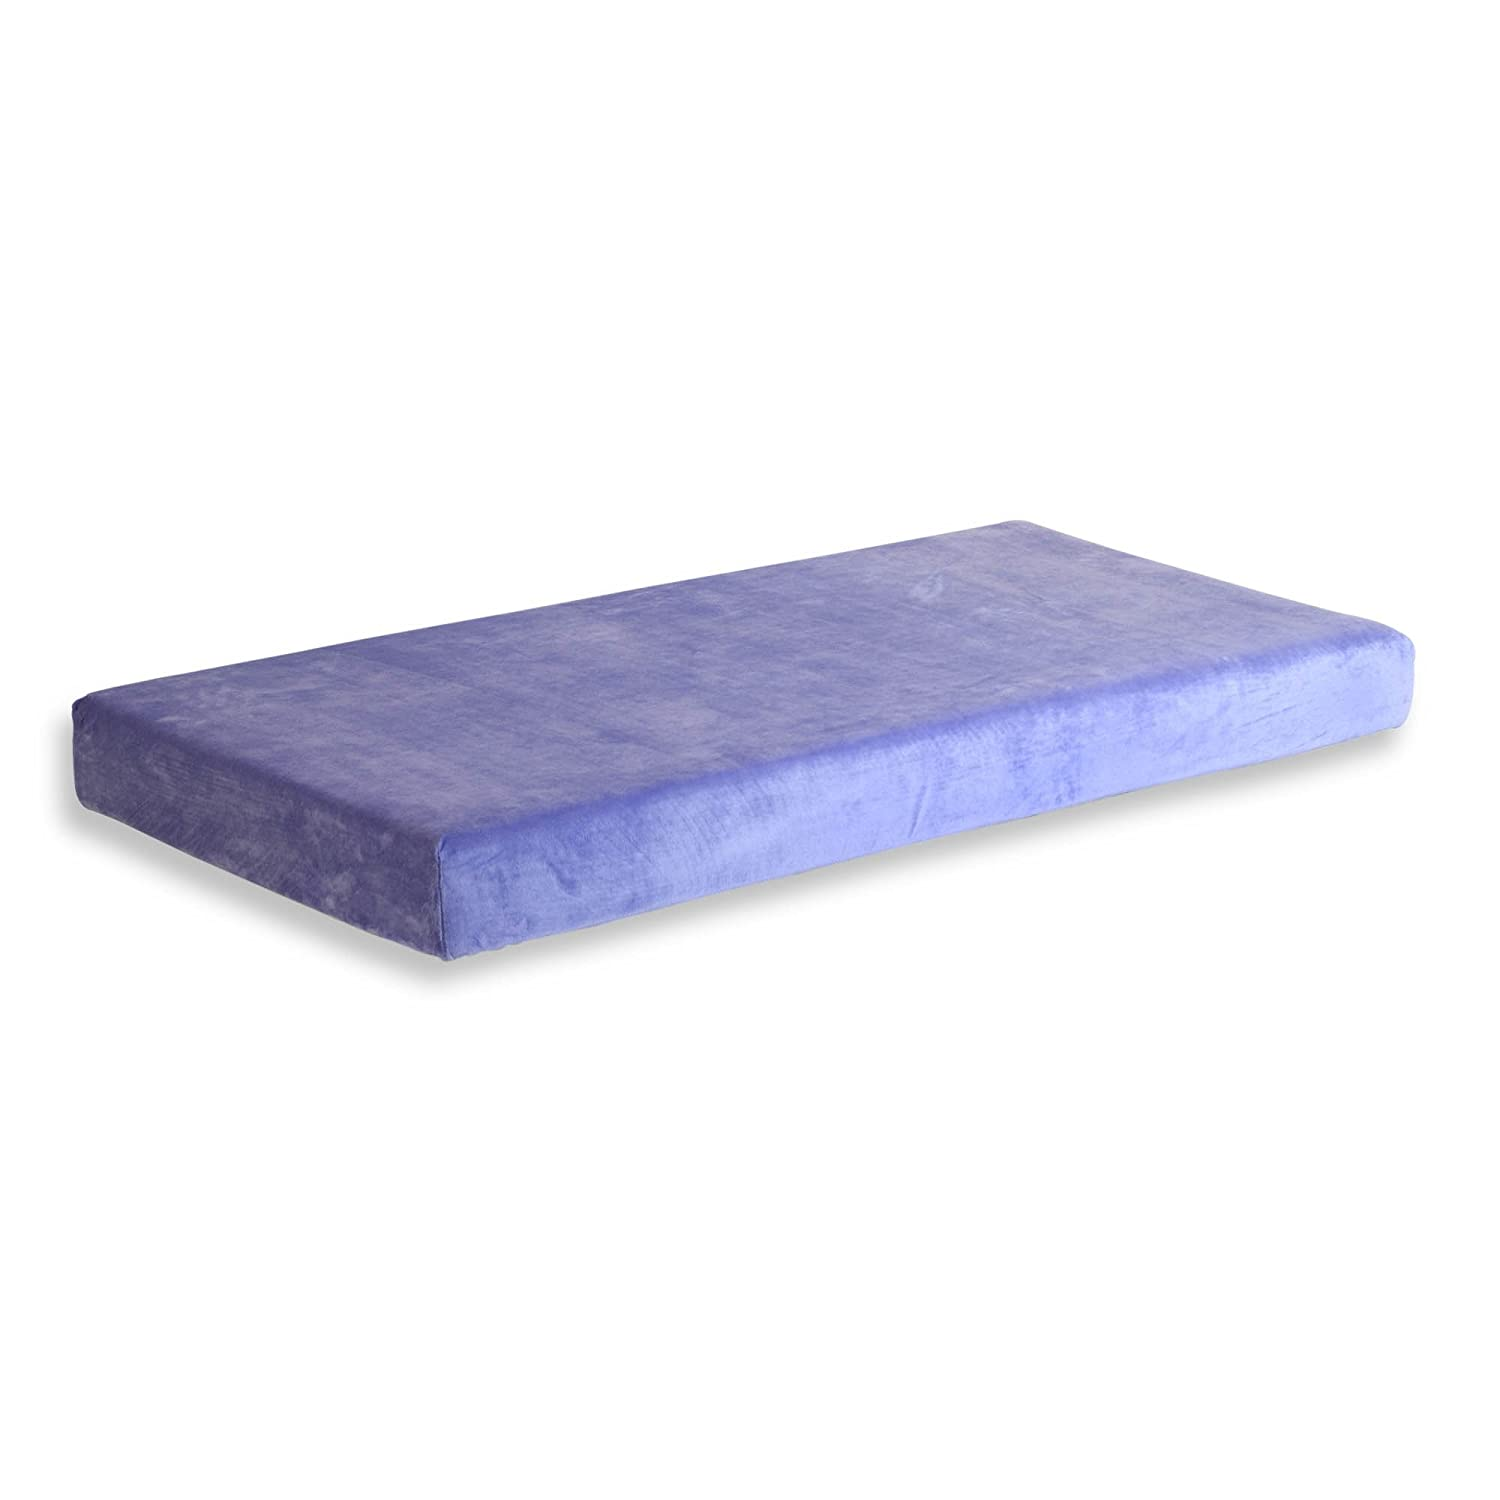 Cheap twin mattresses near me sleep cheap mattresses u0026 more pallets twin mattress old Affordable twin mattress